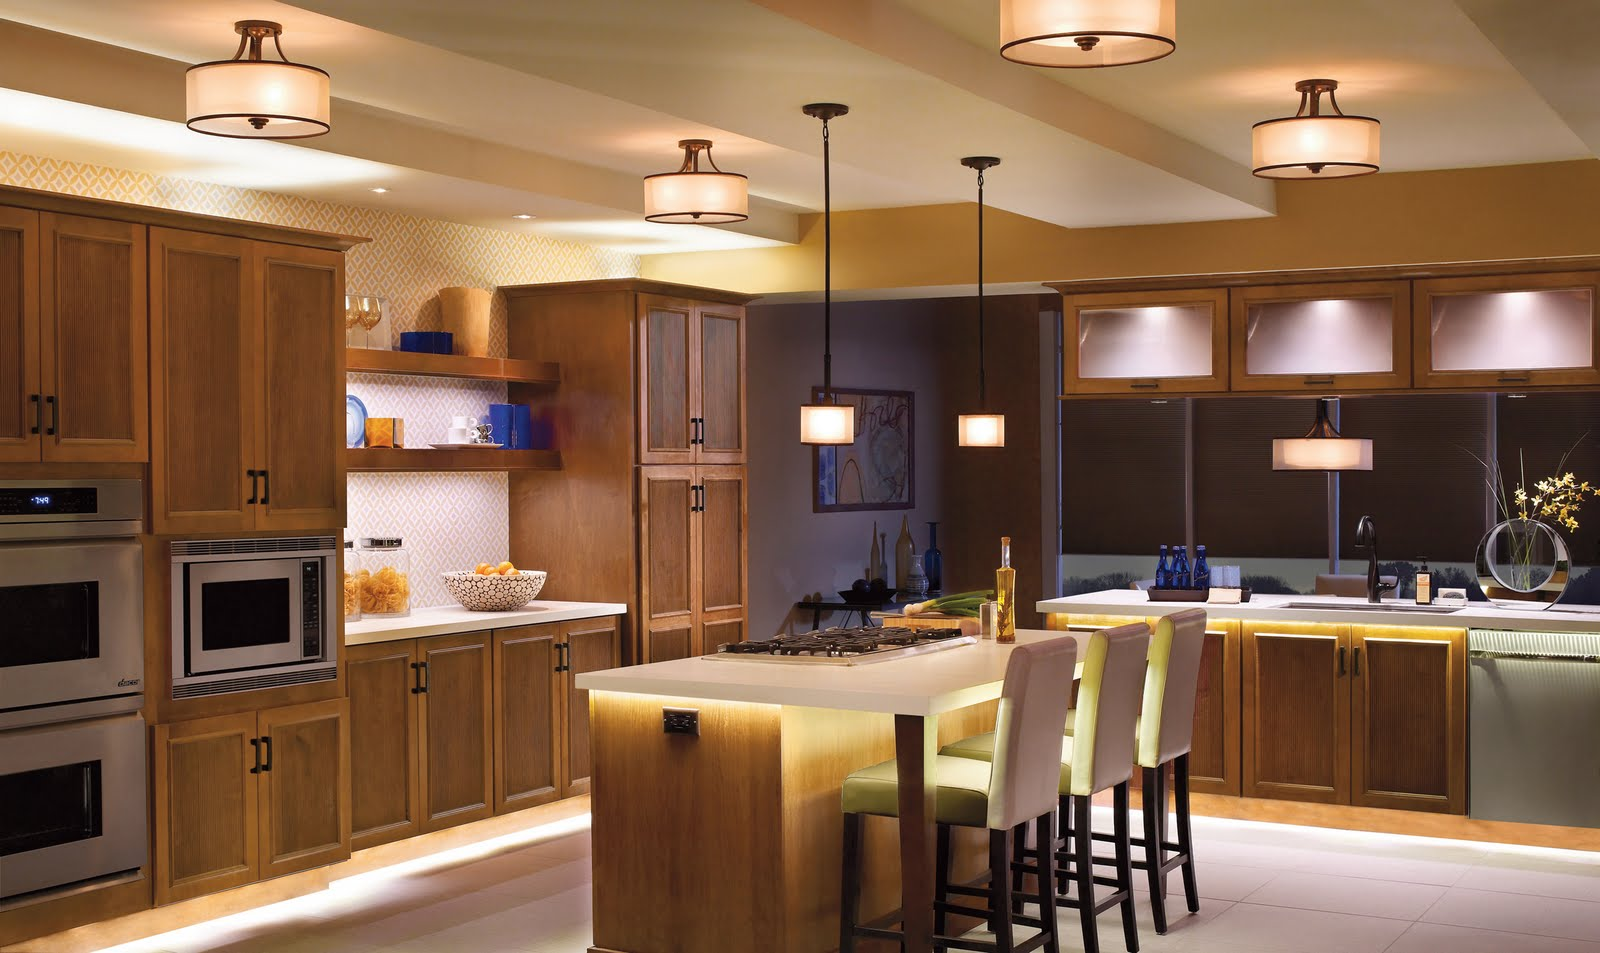 Kitchen Lighting Design Tips | EiXei Home Improvement